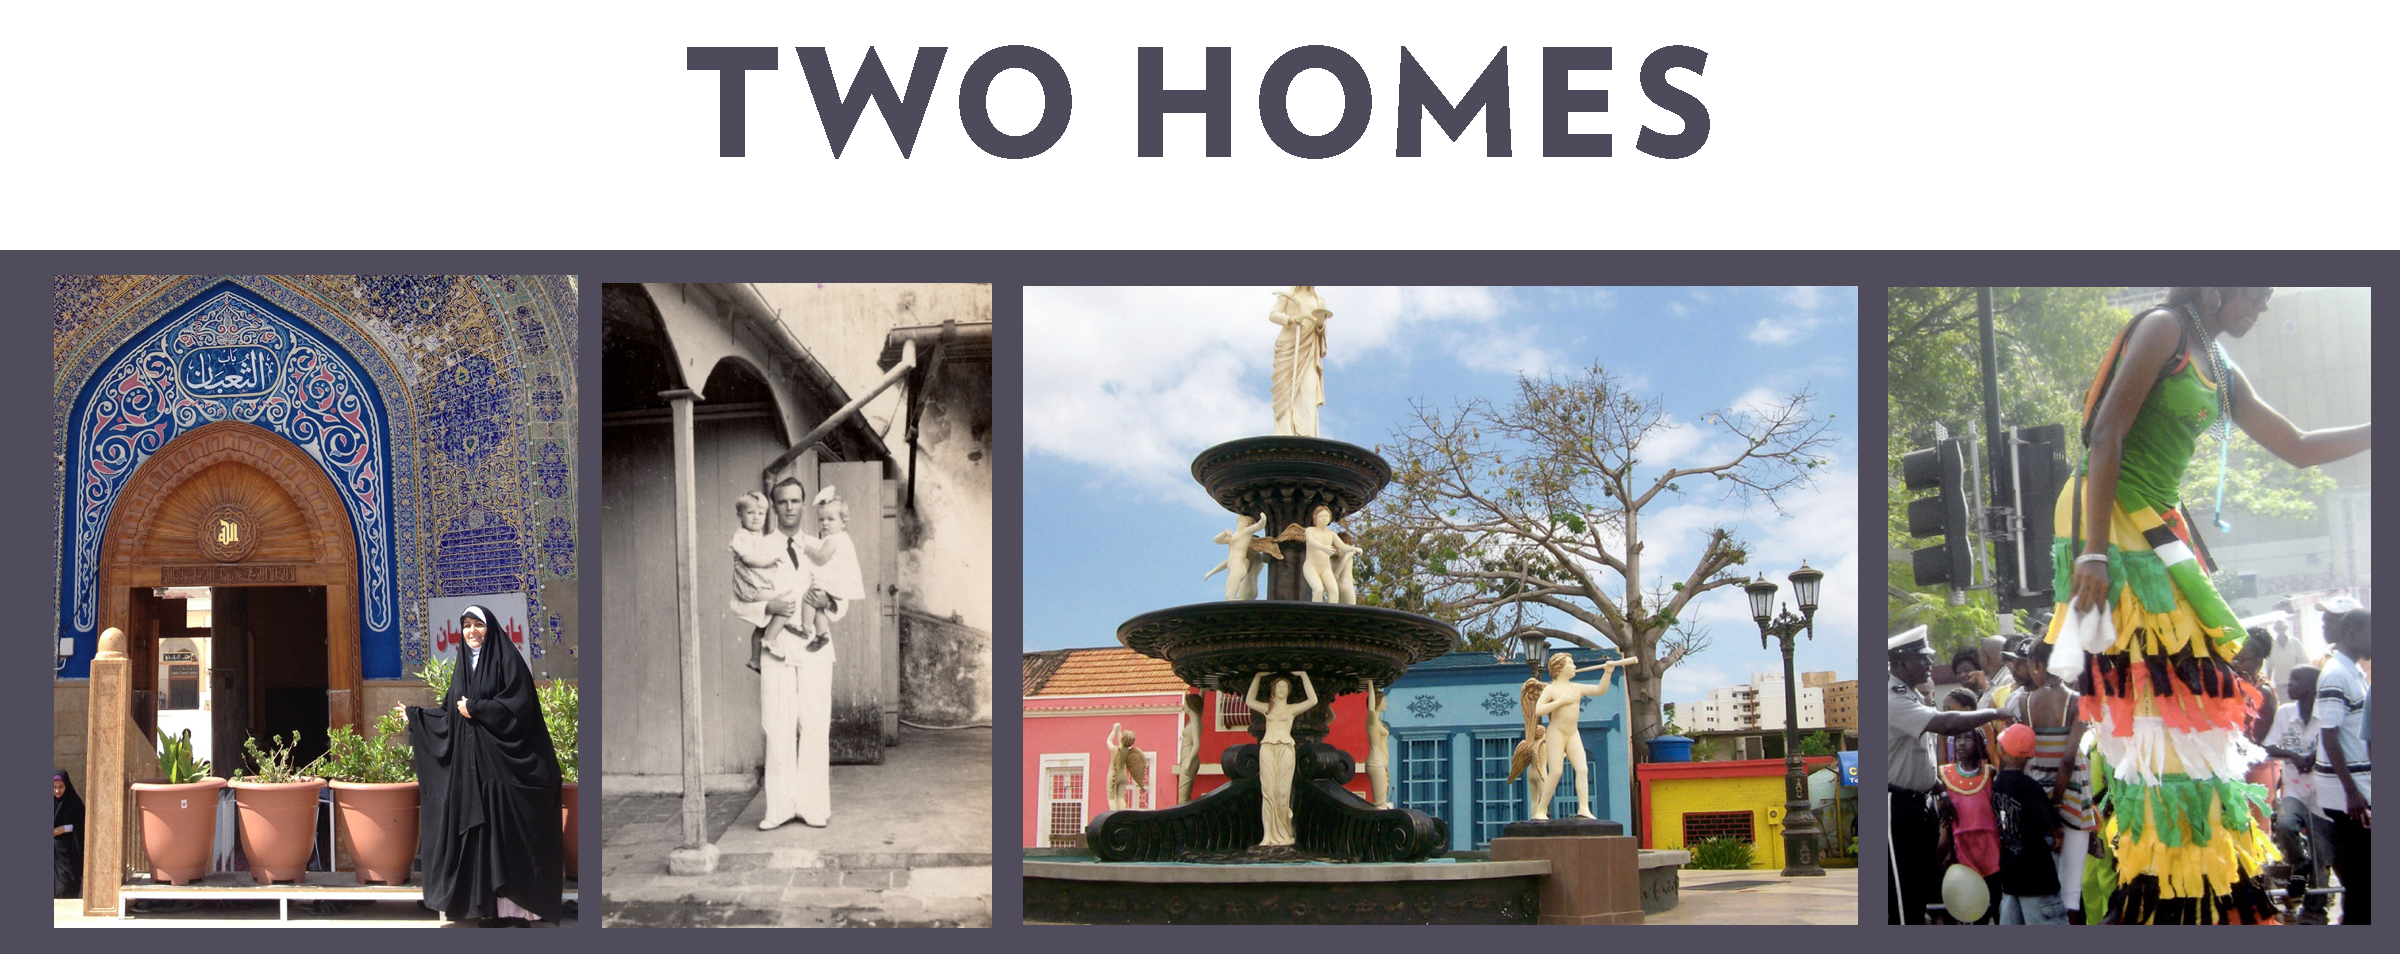 5.Two Homes